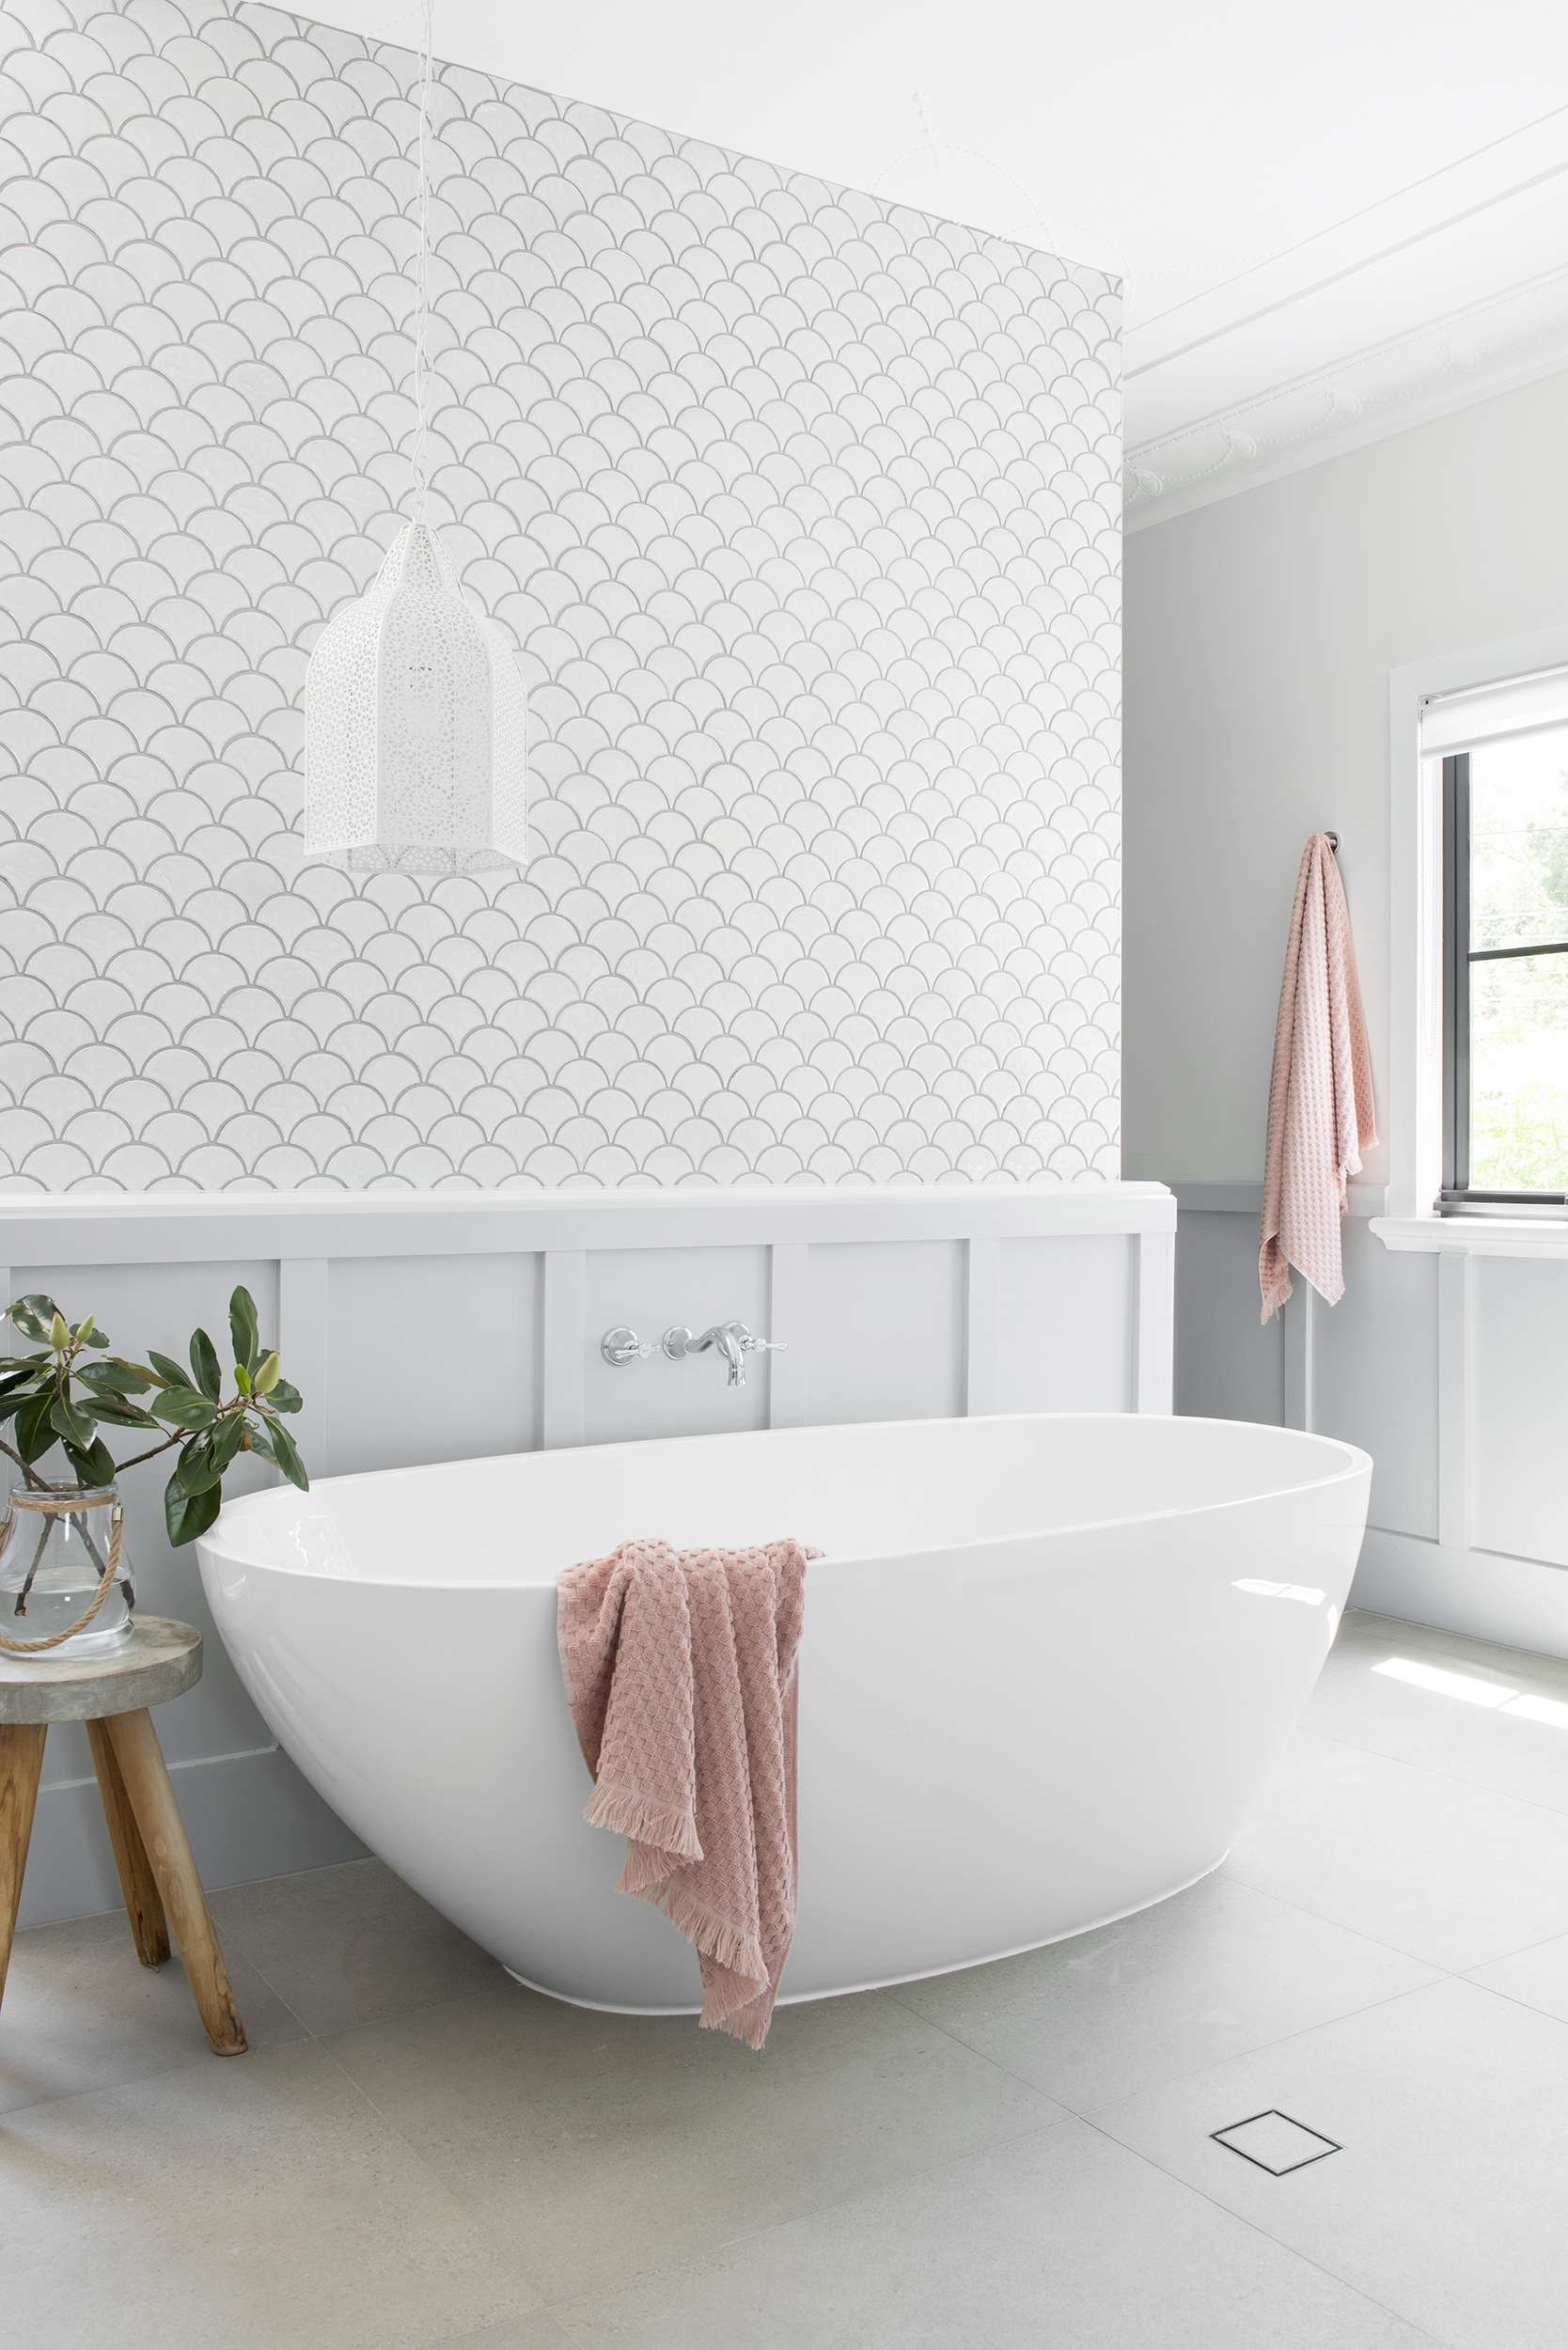 The ensuite was formerly a bedroom. Due to its large size, Rachael decided to build a wall in the middle of the room to keep the space from feeling too vast. Tiles from TileCloud.